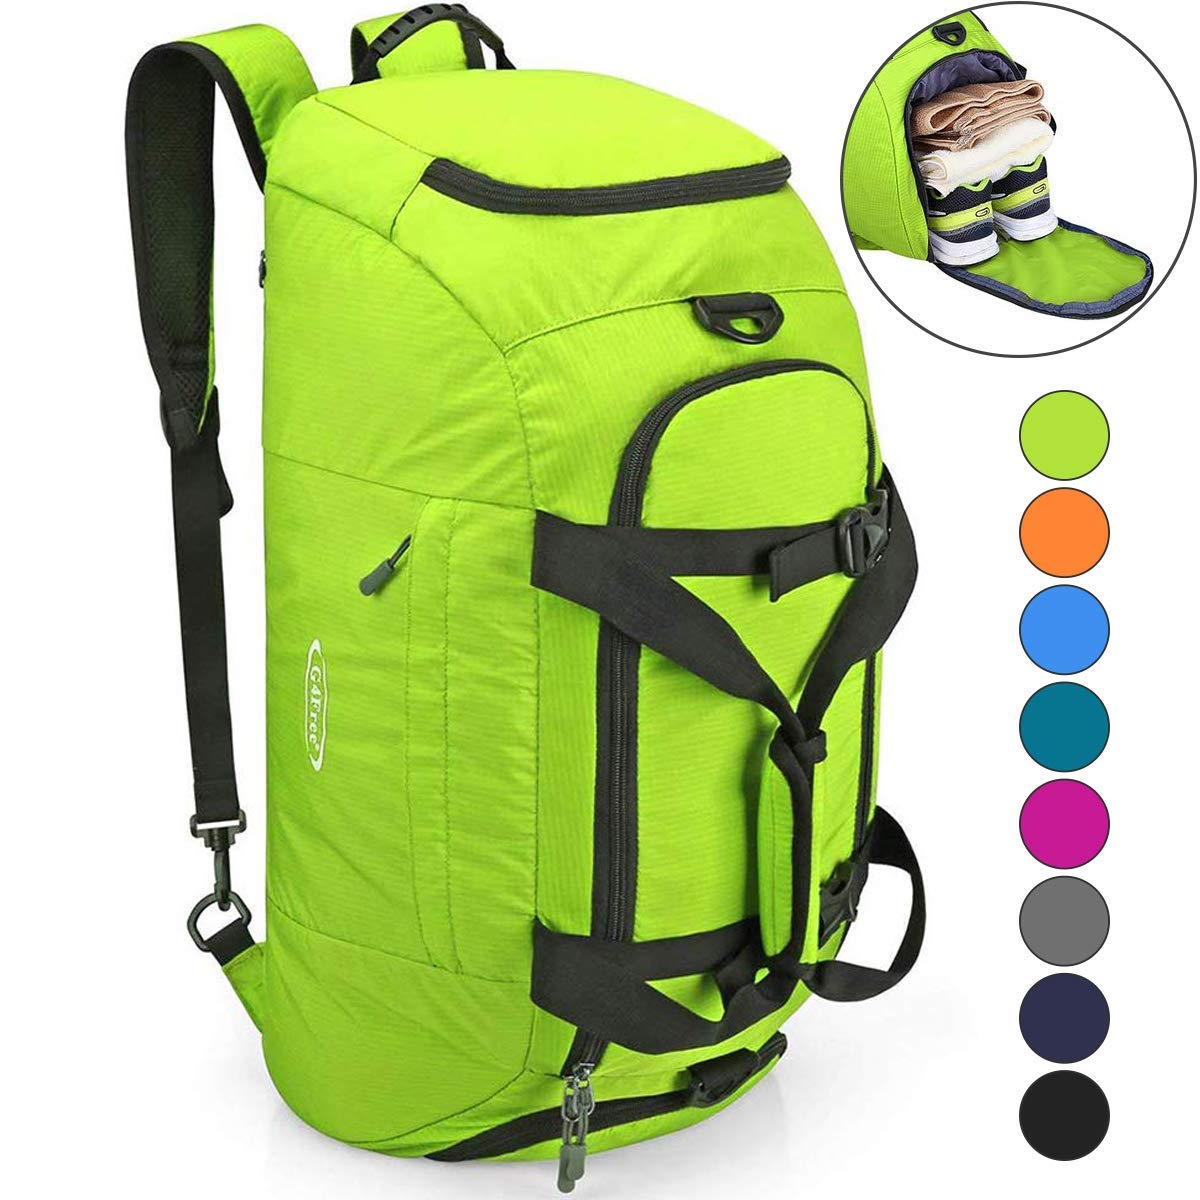 G4Free 3-Way Duffle Backpack Gym Bag for Men Women Sports Duffel Bag with Shoe Compartment Travel Backpack Luggage 40L by G4Free